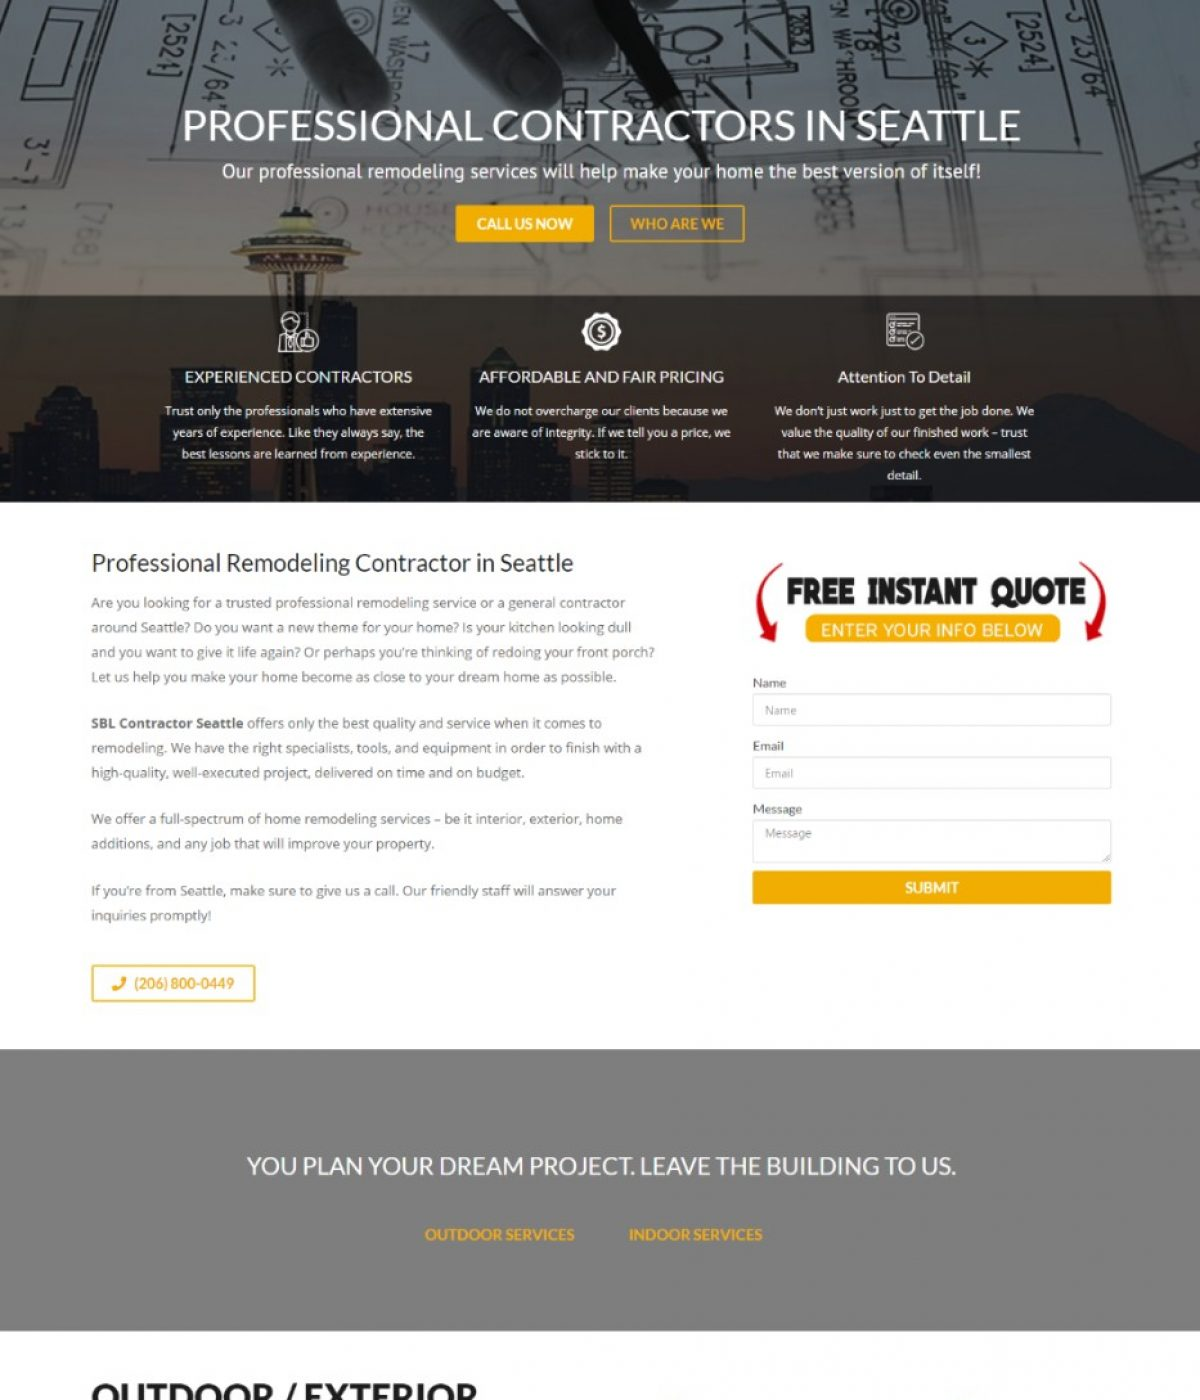 sbl contractor seattle by mtb strategy